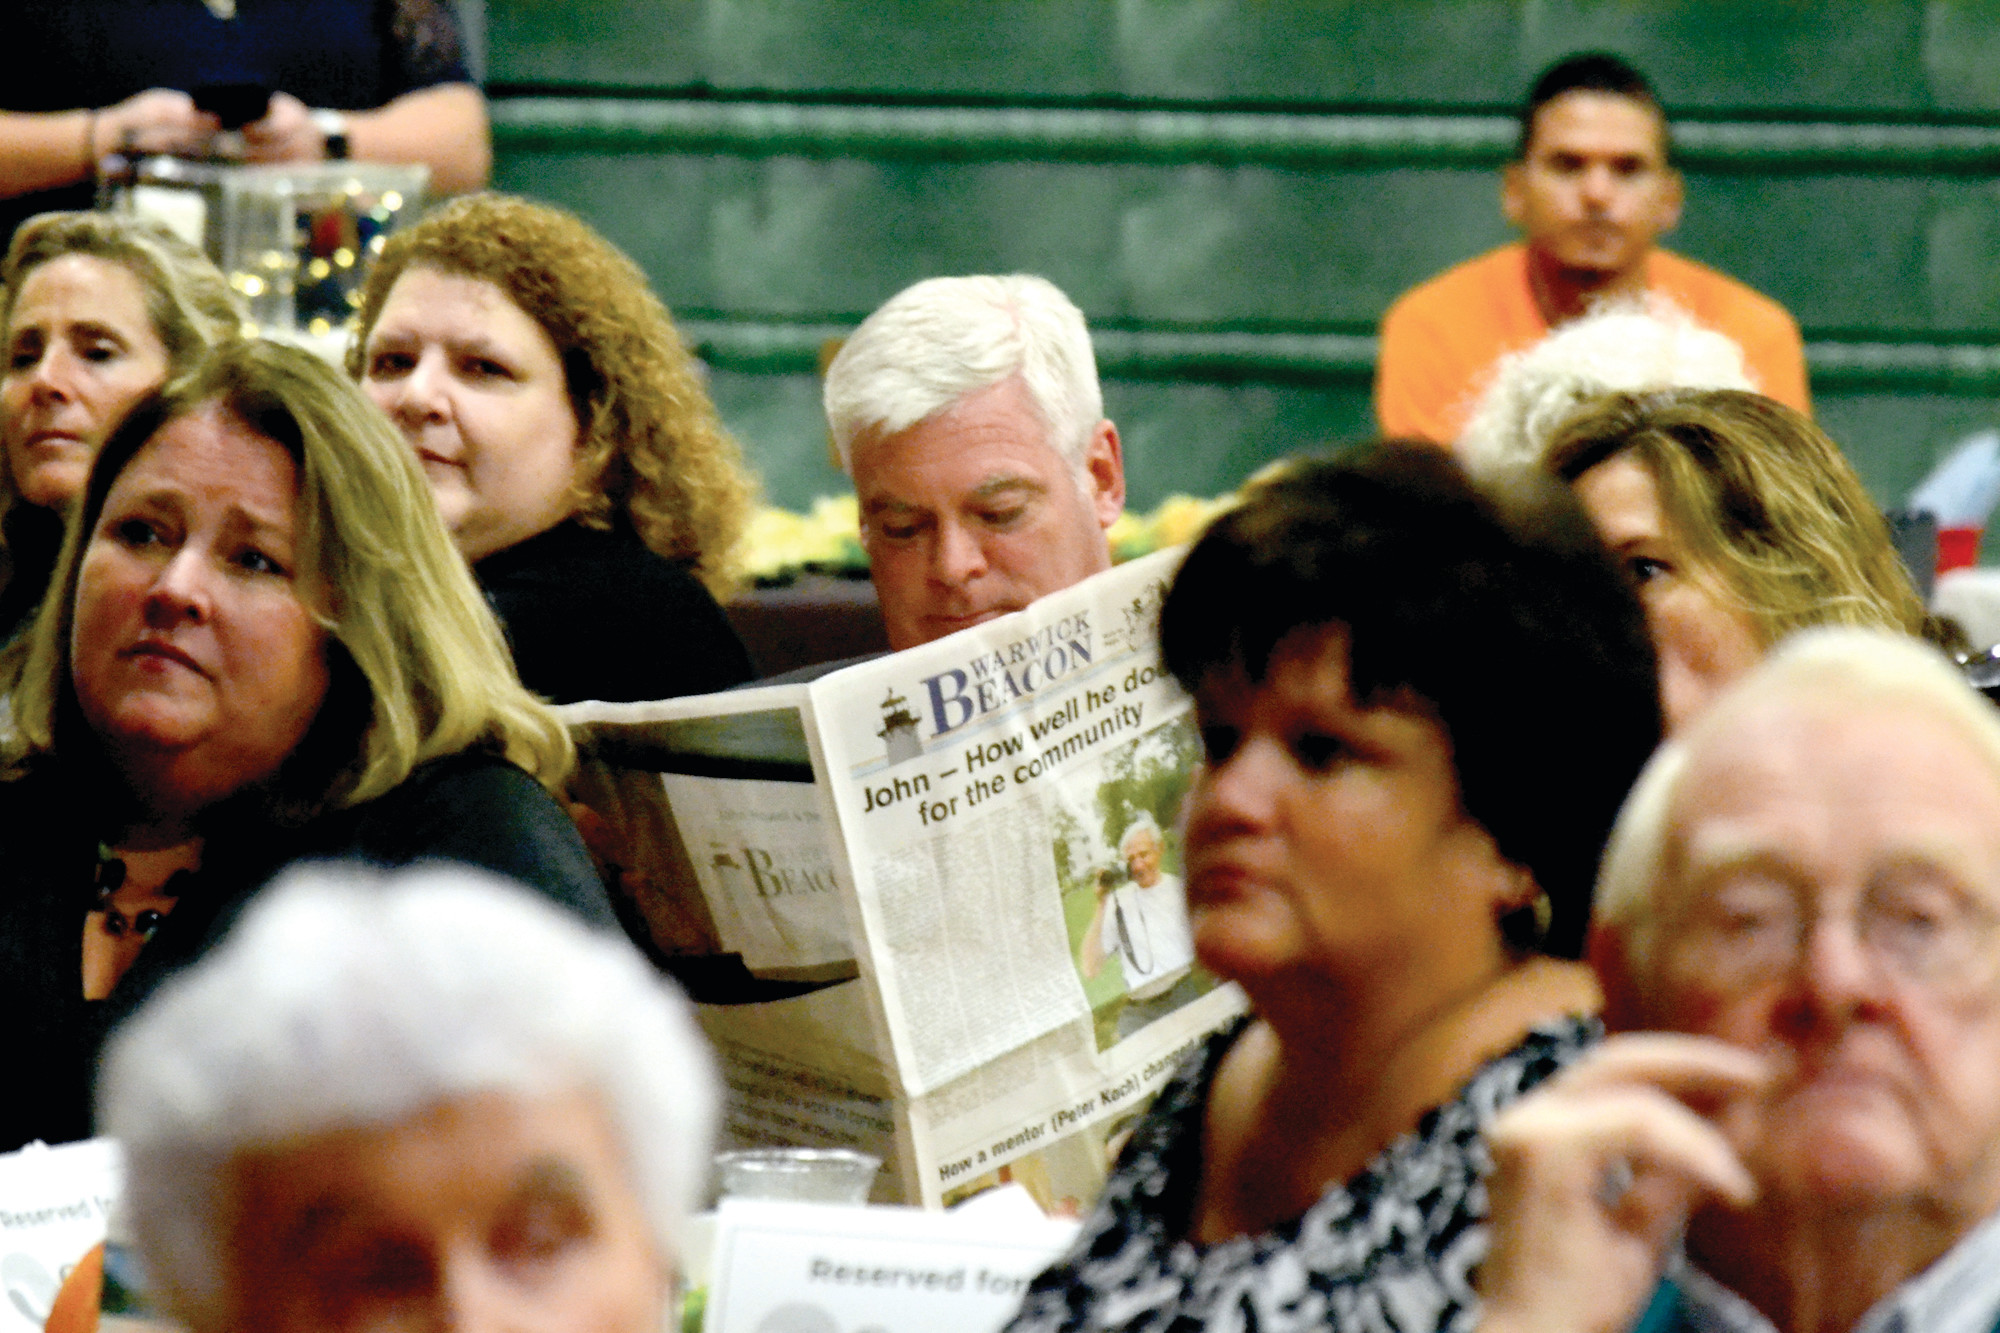 EXTRA EXTRA: Mayor Avedisian sits absorbed in the special edition of the Beacon that was produced especially for John Howell's tribute event, held at Bishop Hendricken last Thursday evening.